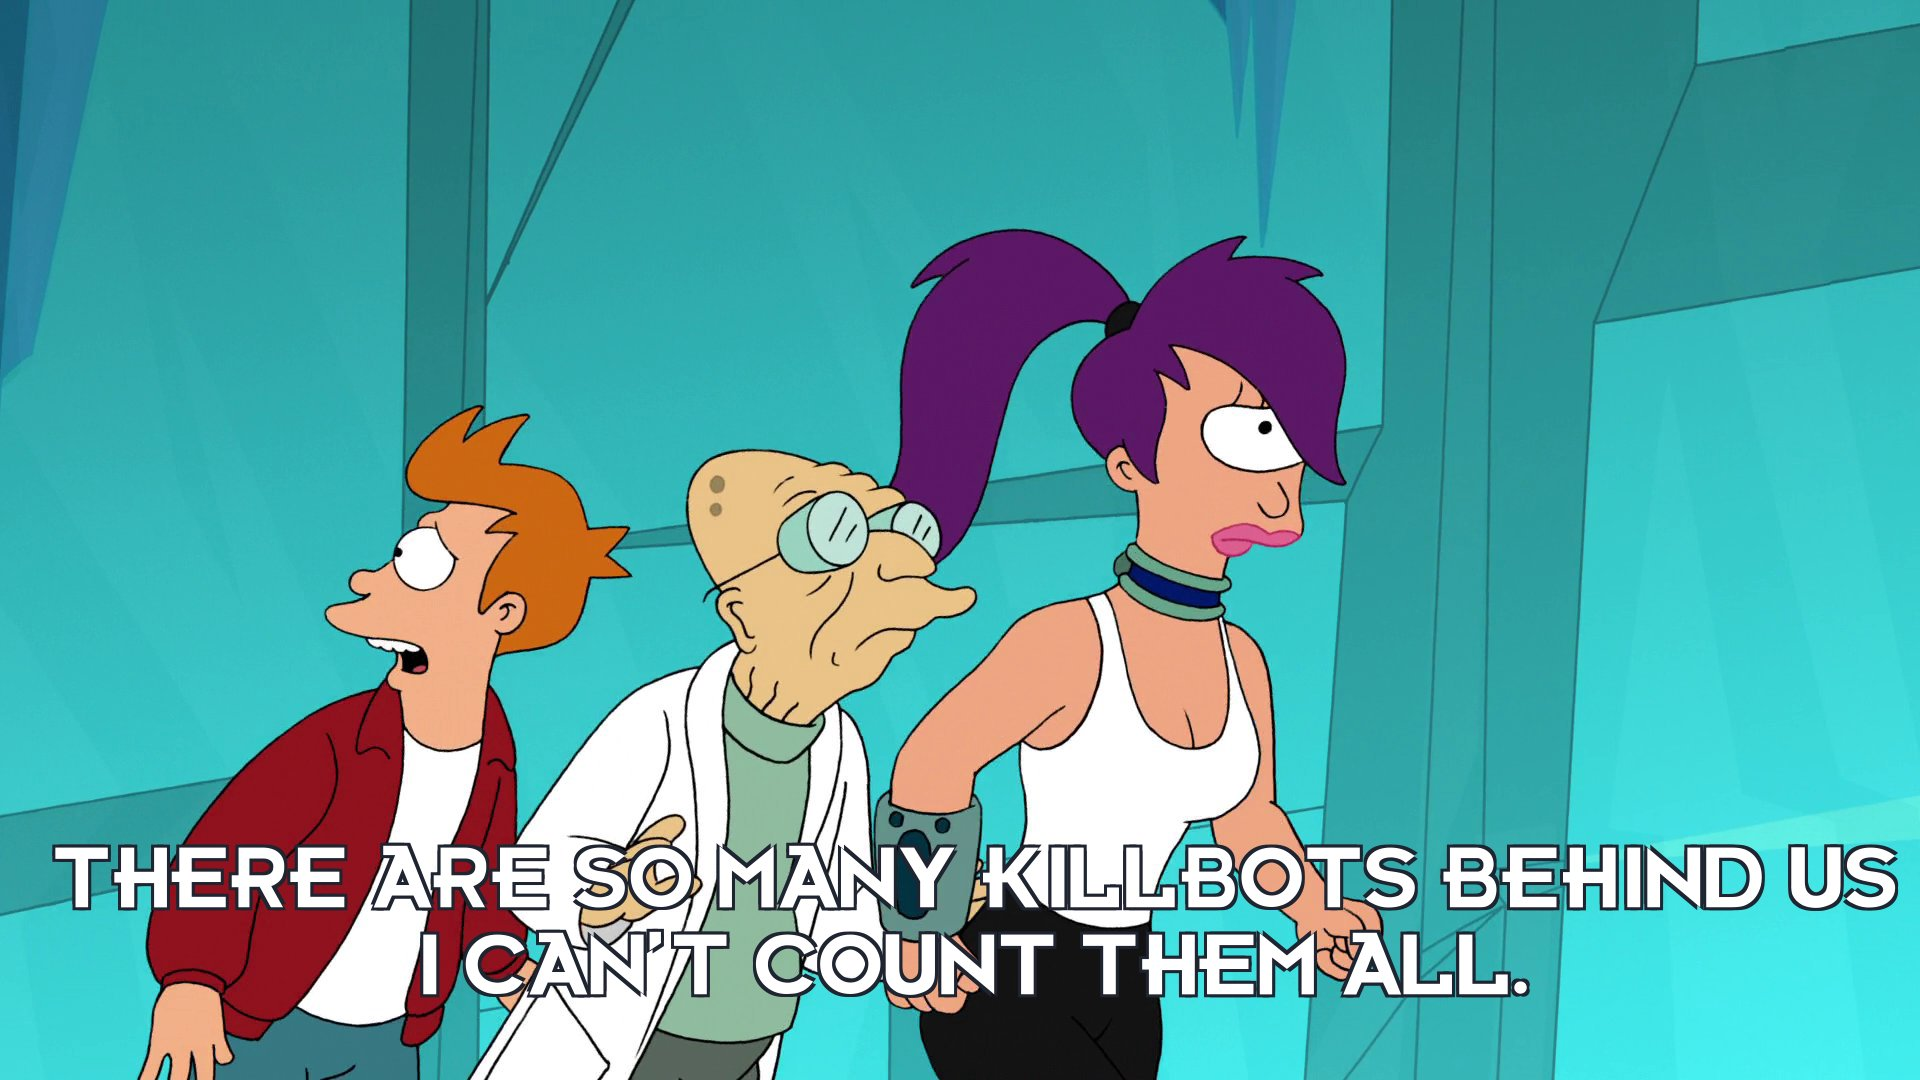 Philip J Fry: There are so many killbots behind us I can't count them all.